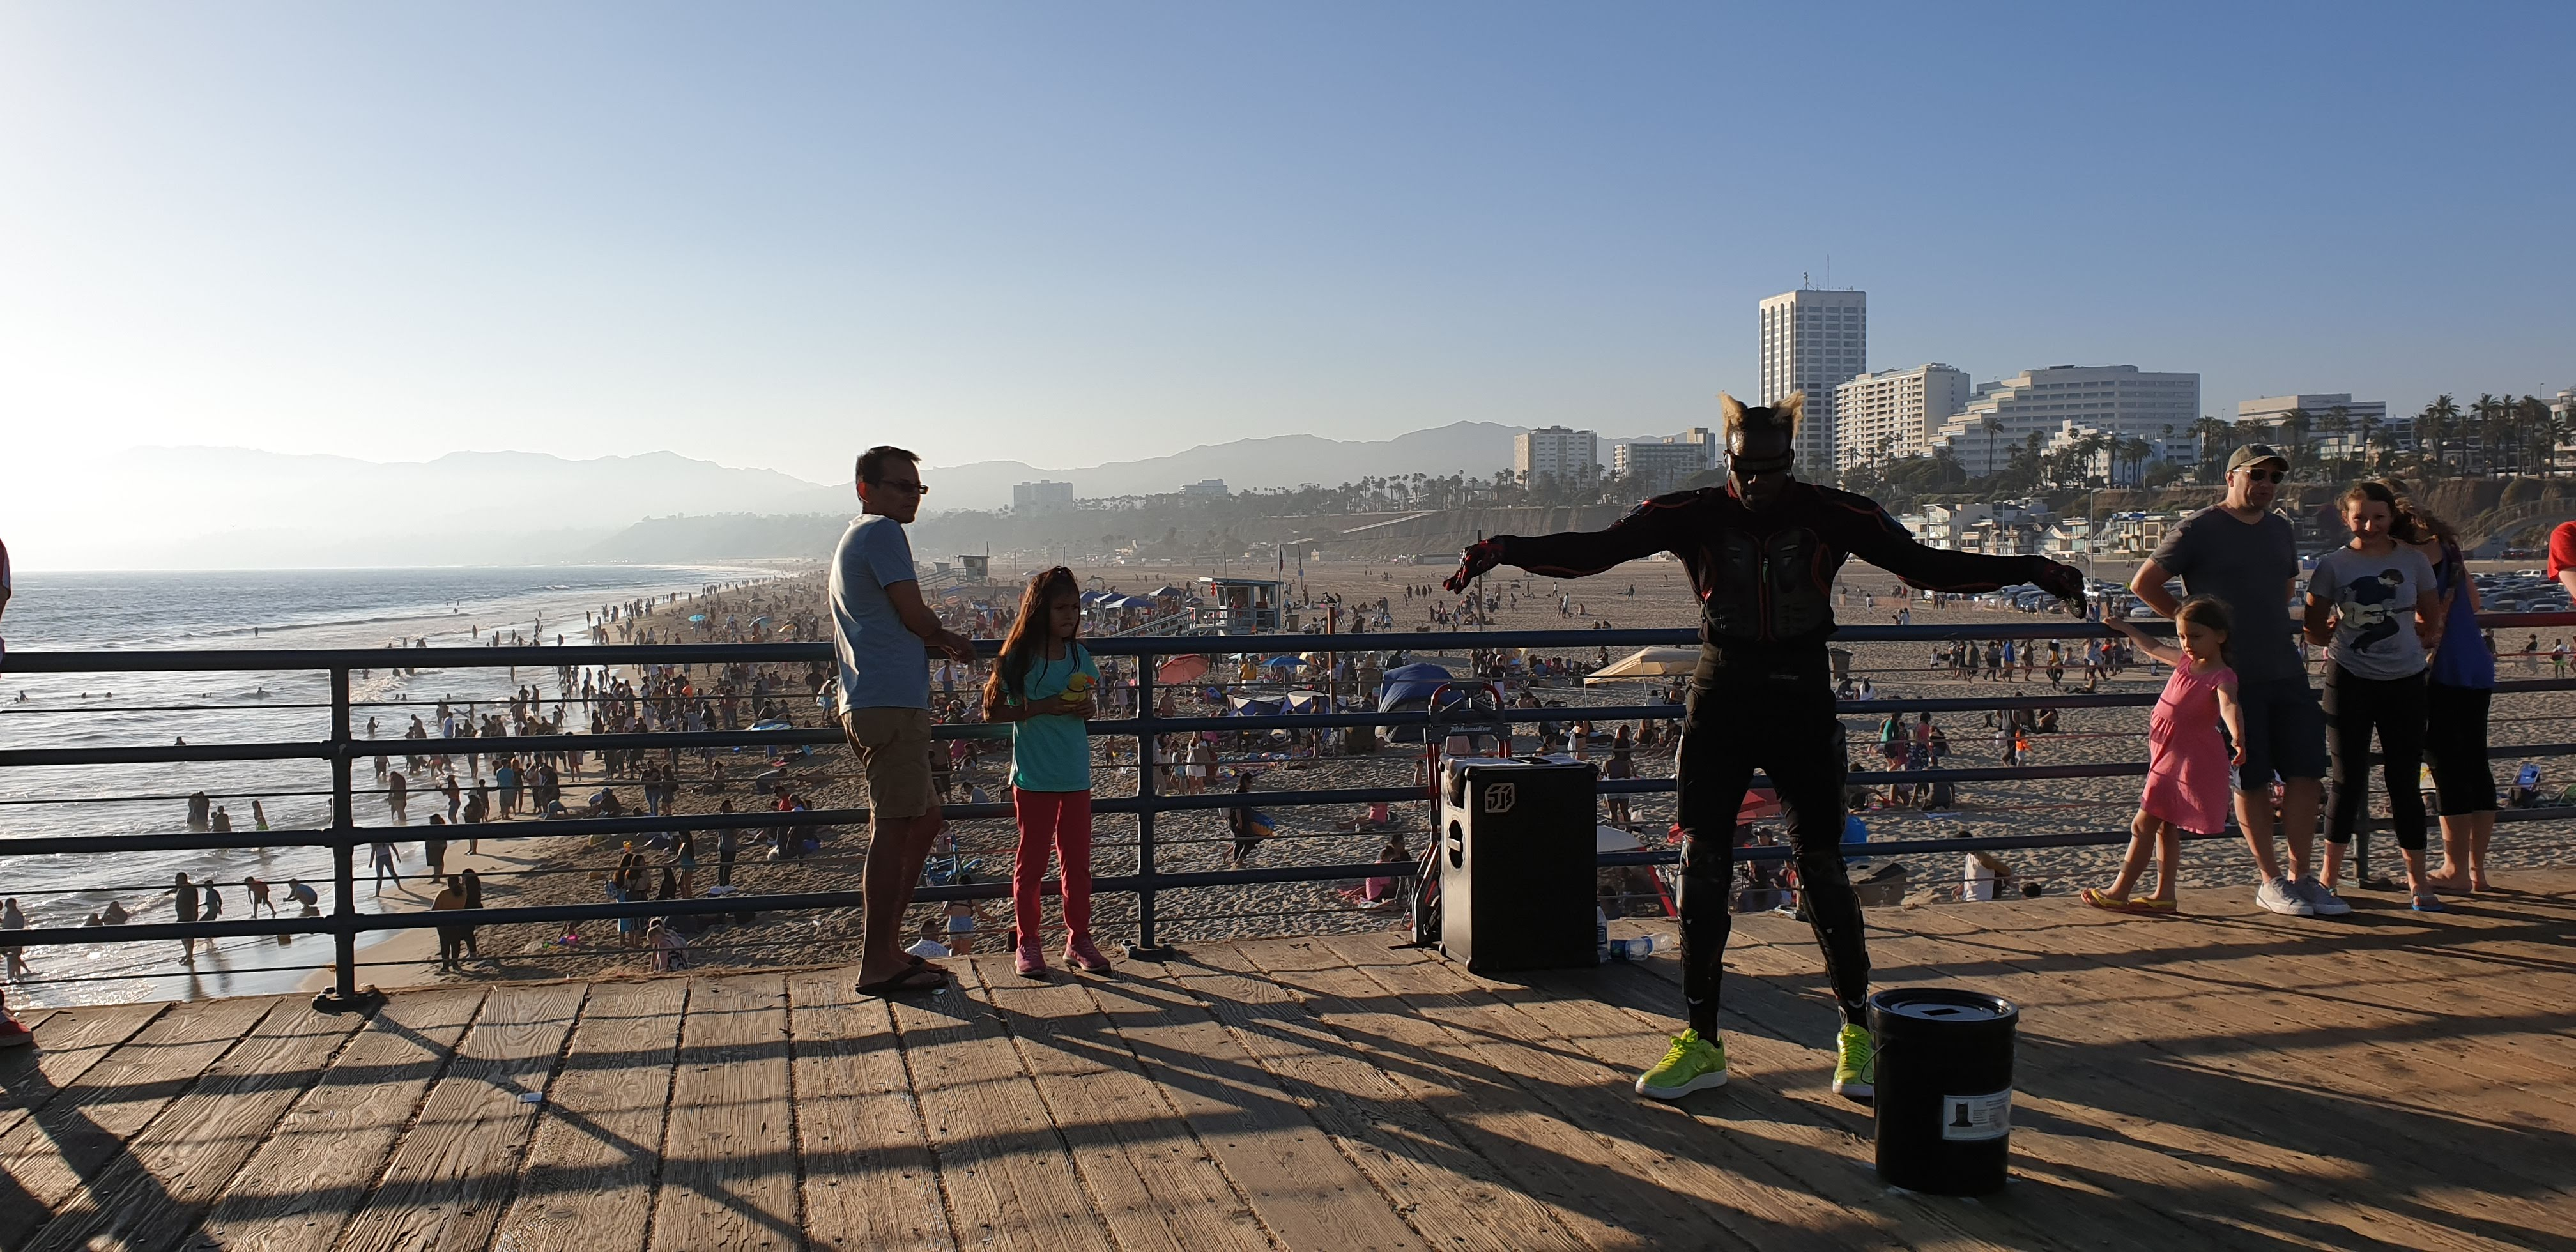 Buskers dance on Santa Monica Pier